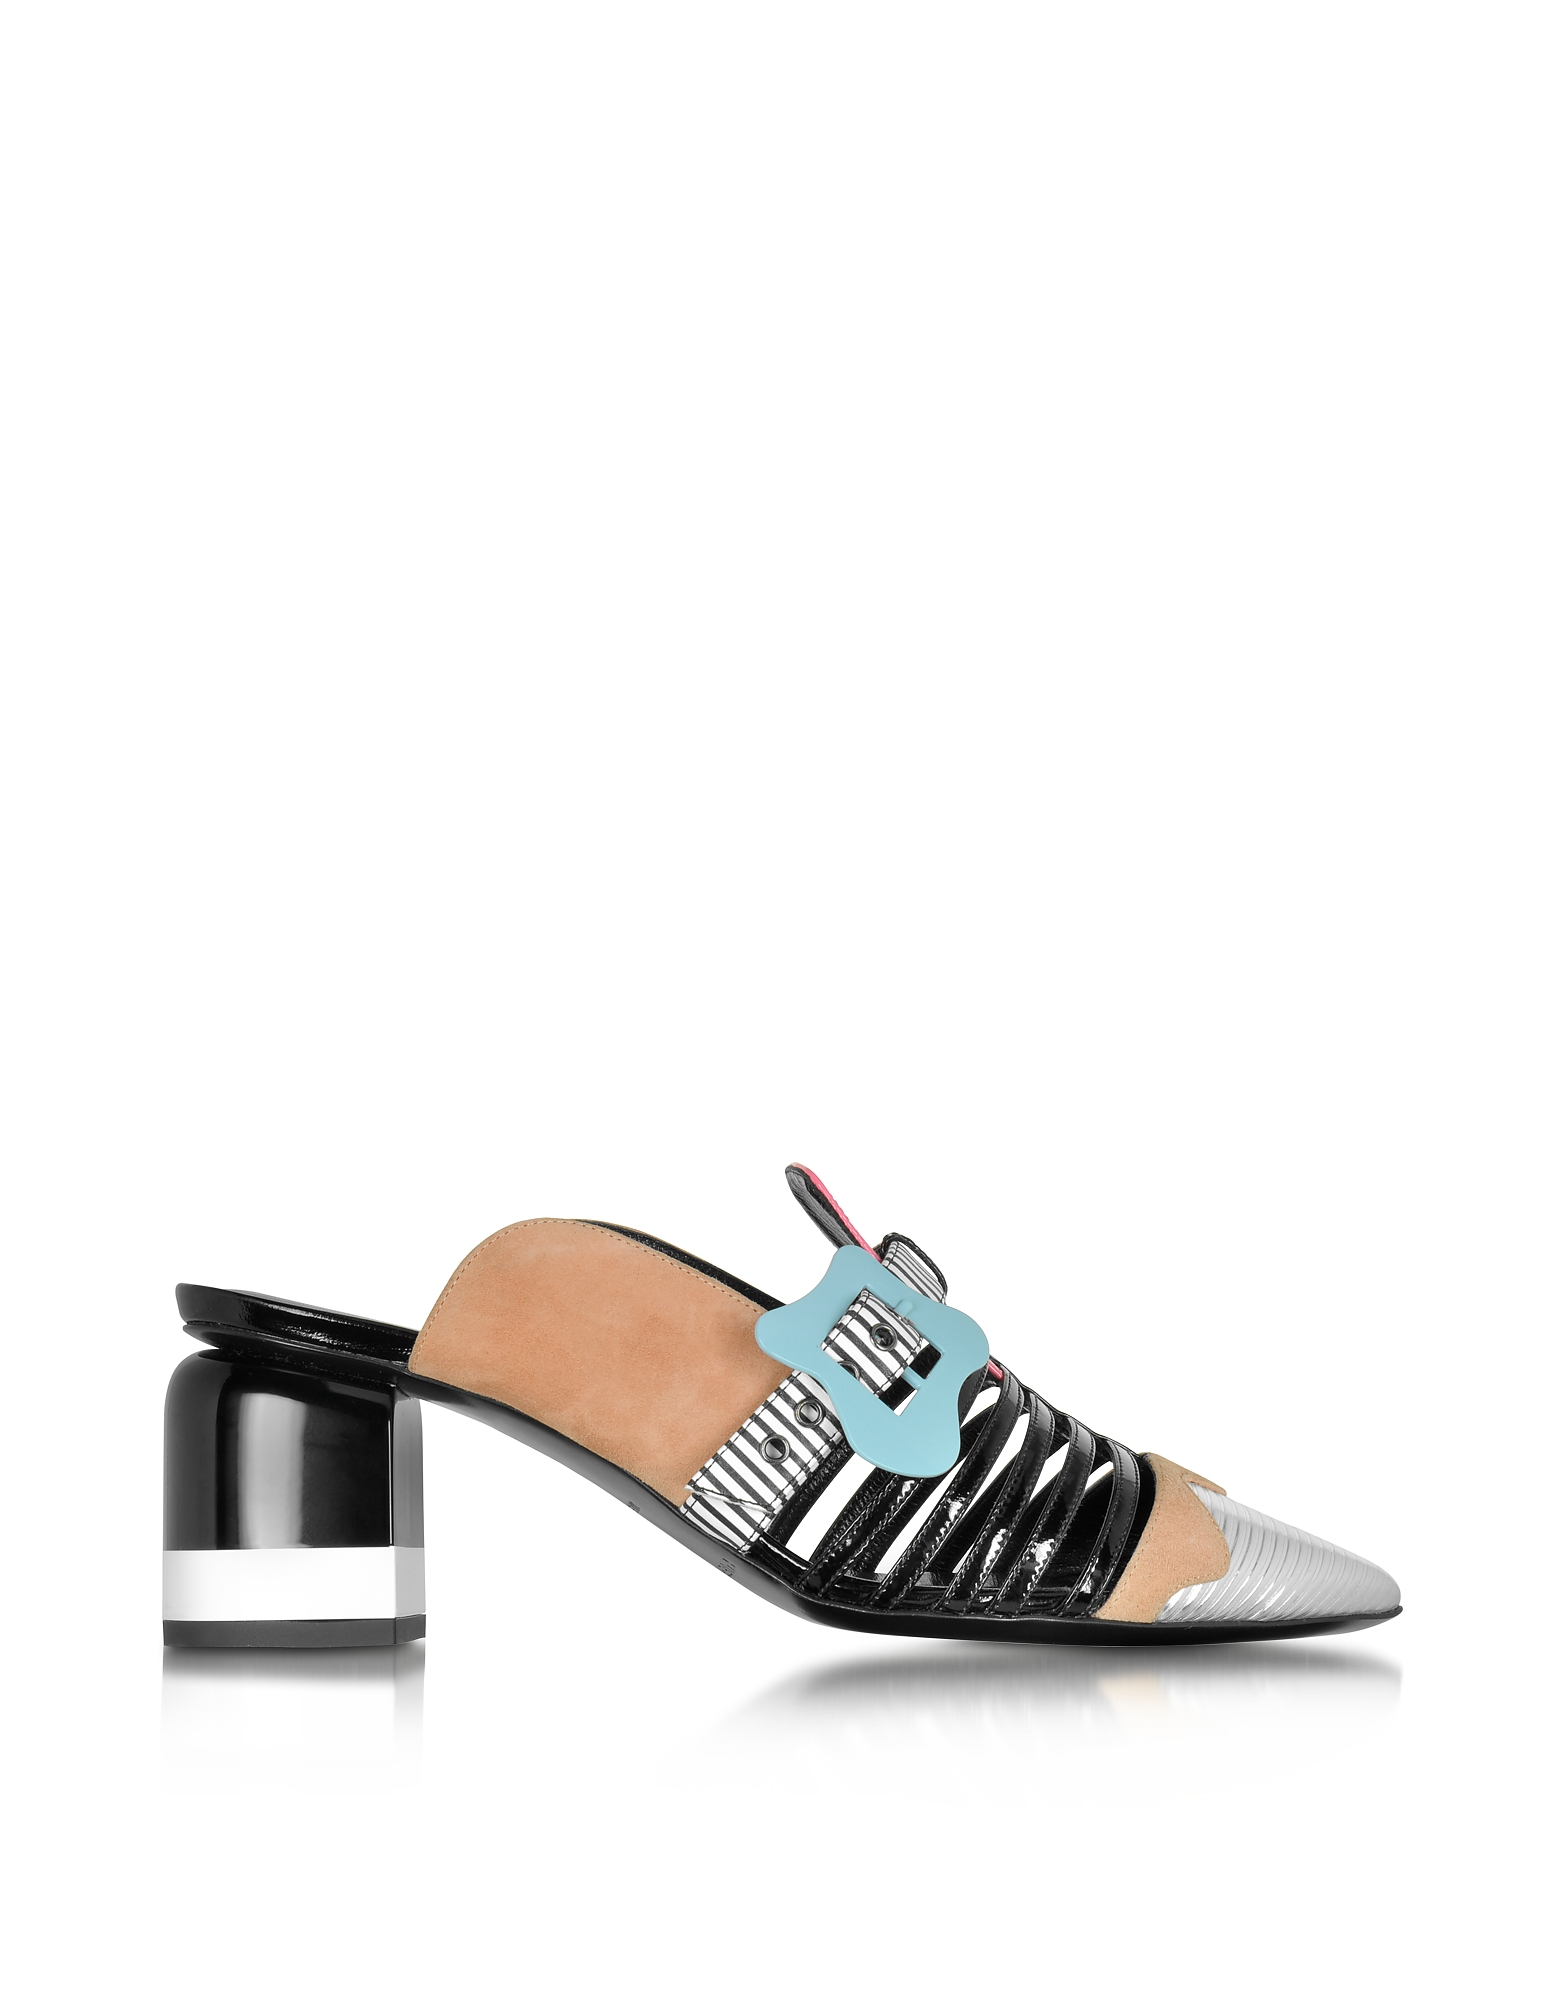 Pierre Hardy Shoes, Multicolor Stripes Leather & Suede Alchimia Mule